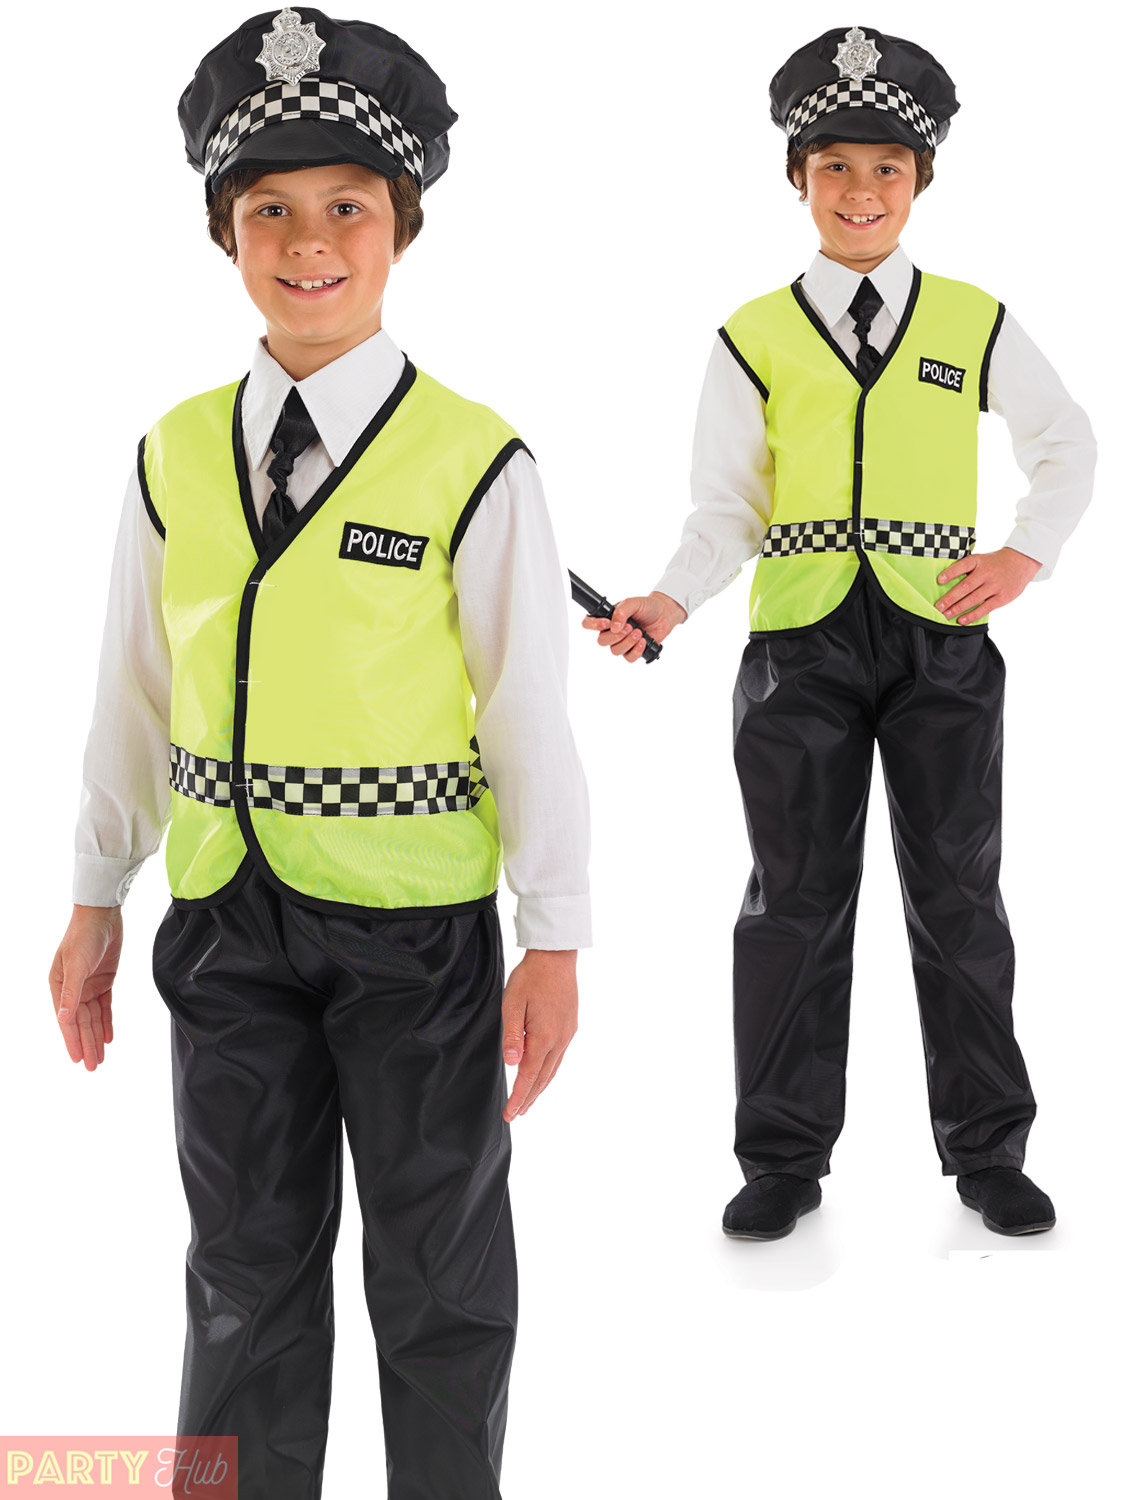 Childs Policeman Costume + Hat Boys Police Fancy Dress Kids Cop Uniform Outfit | eBay